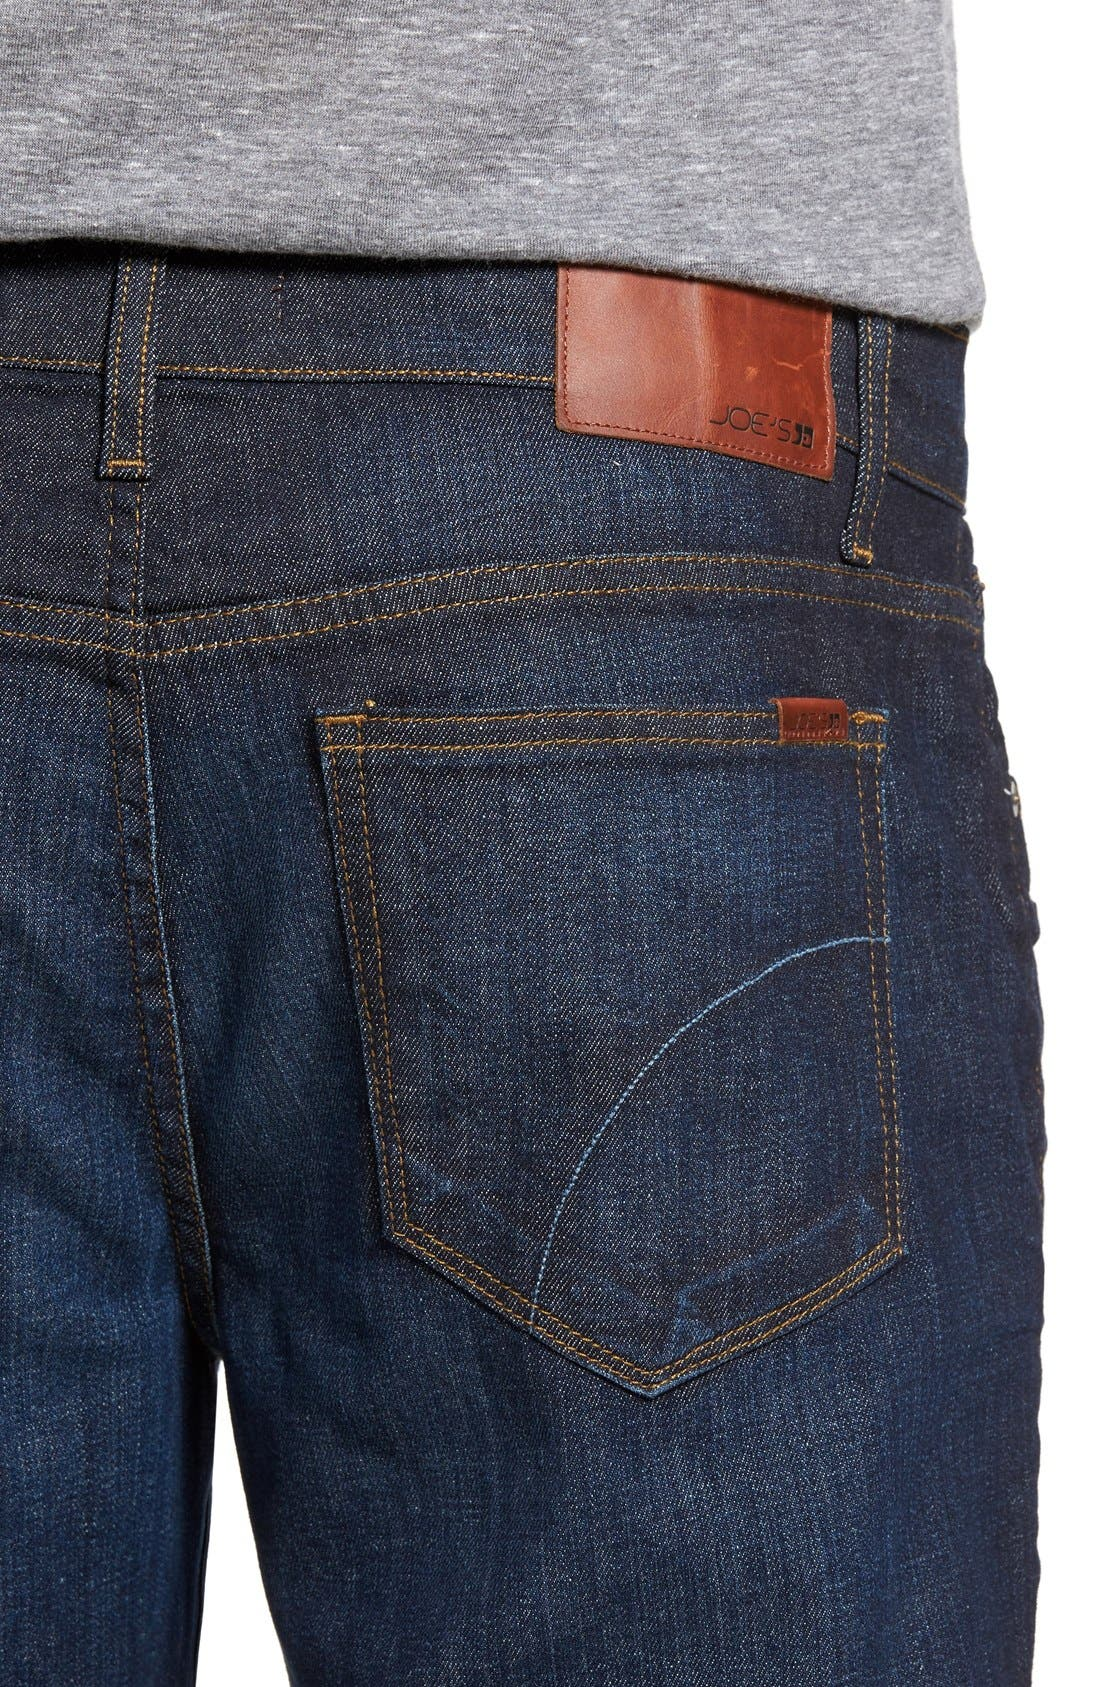 Classic Straight Fit Jeans,                             Alternate thumbnail 9, color,                             TIMOTHY